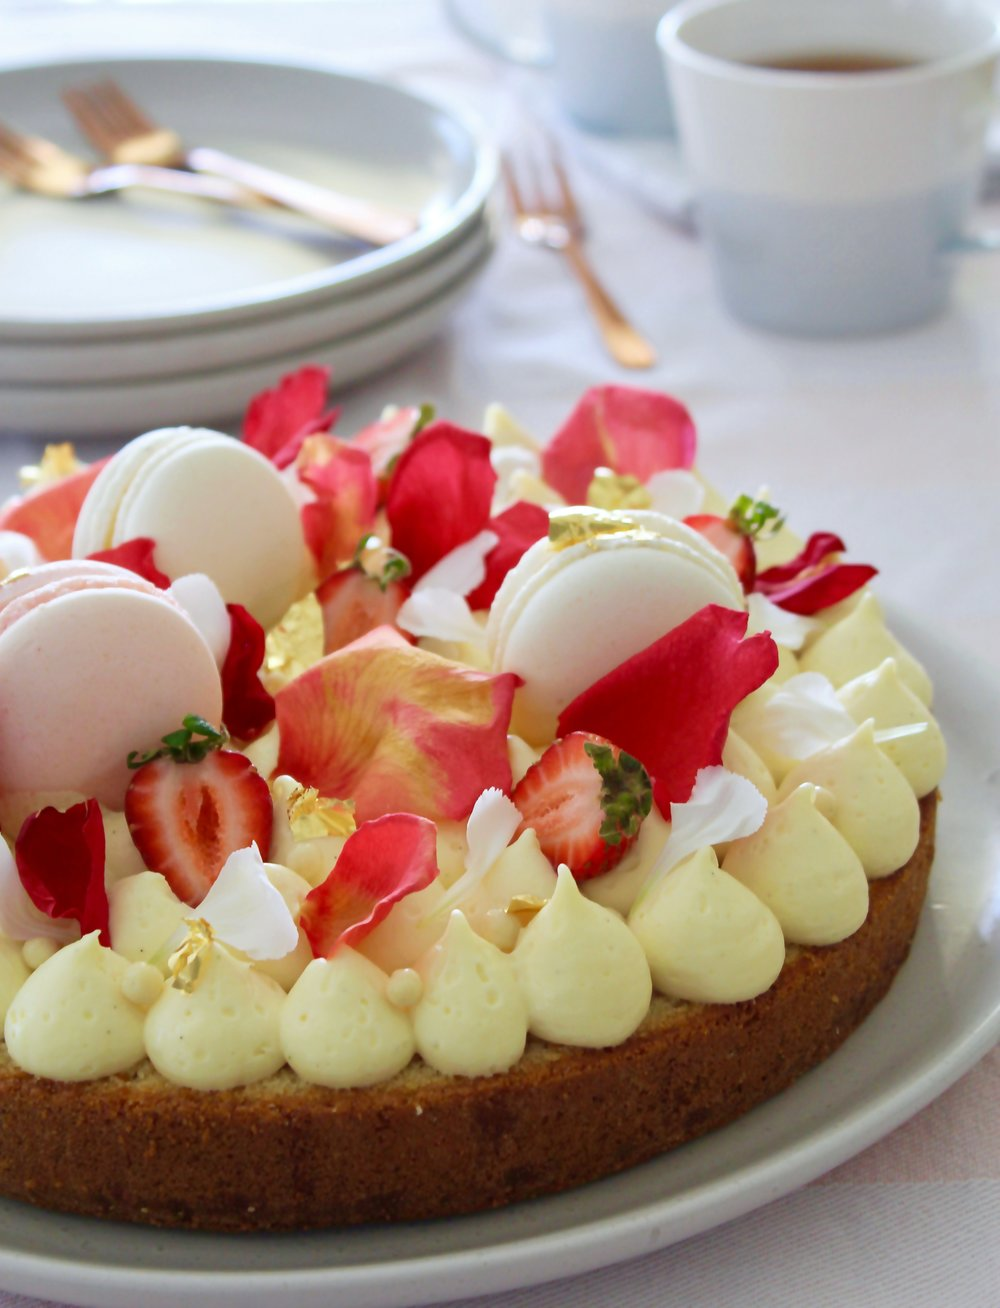 Cheesecake Mousse Strawberry Cake.jpg